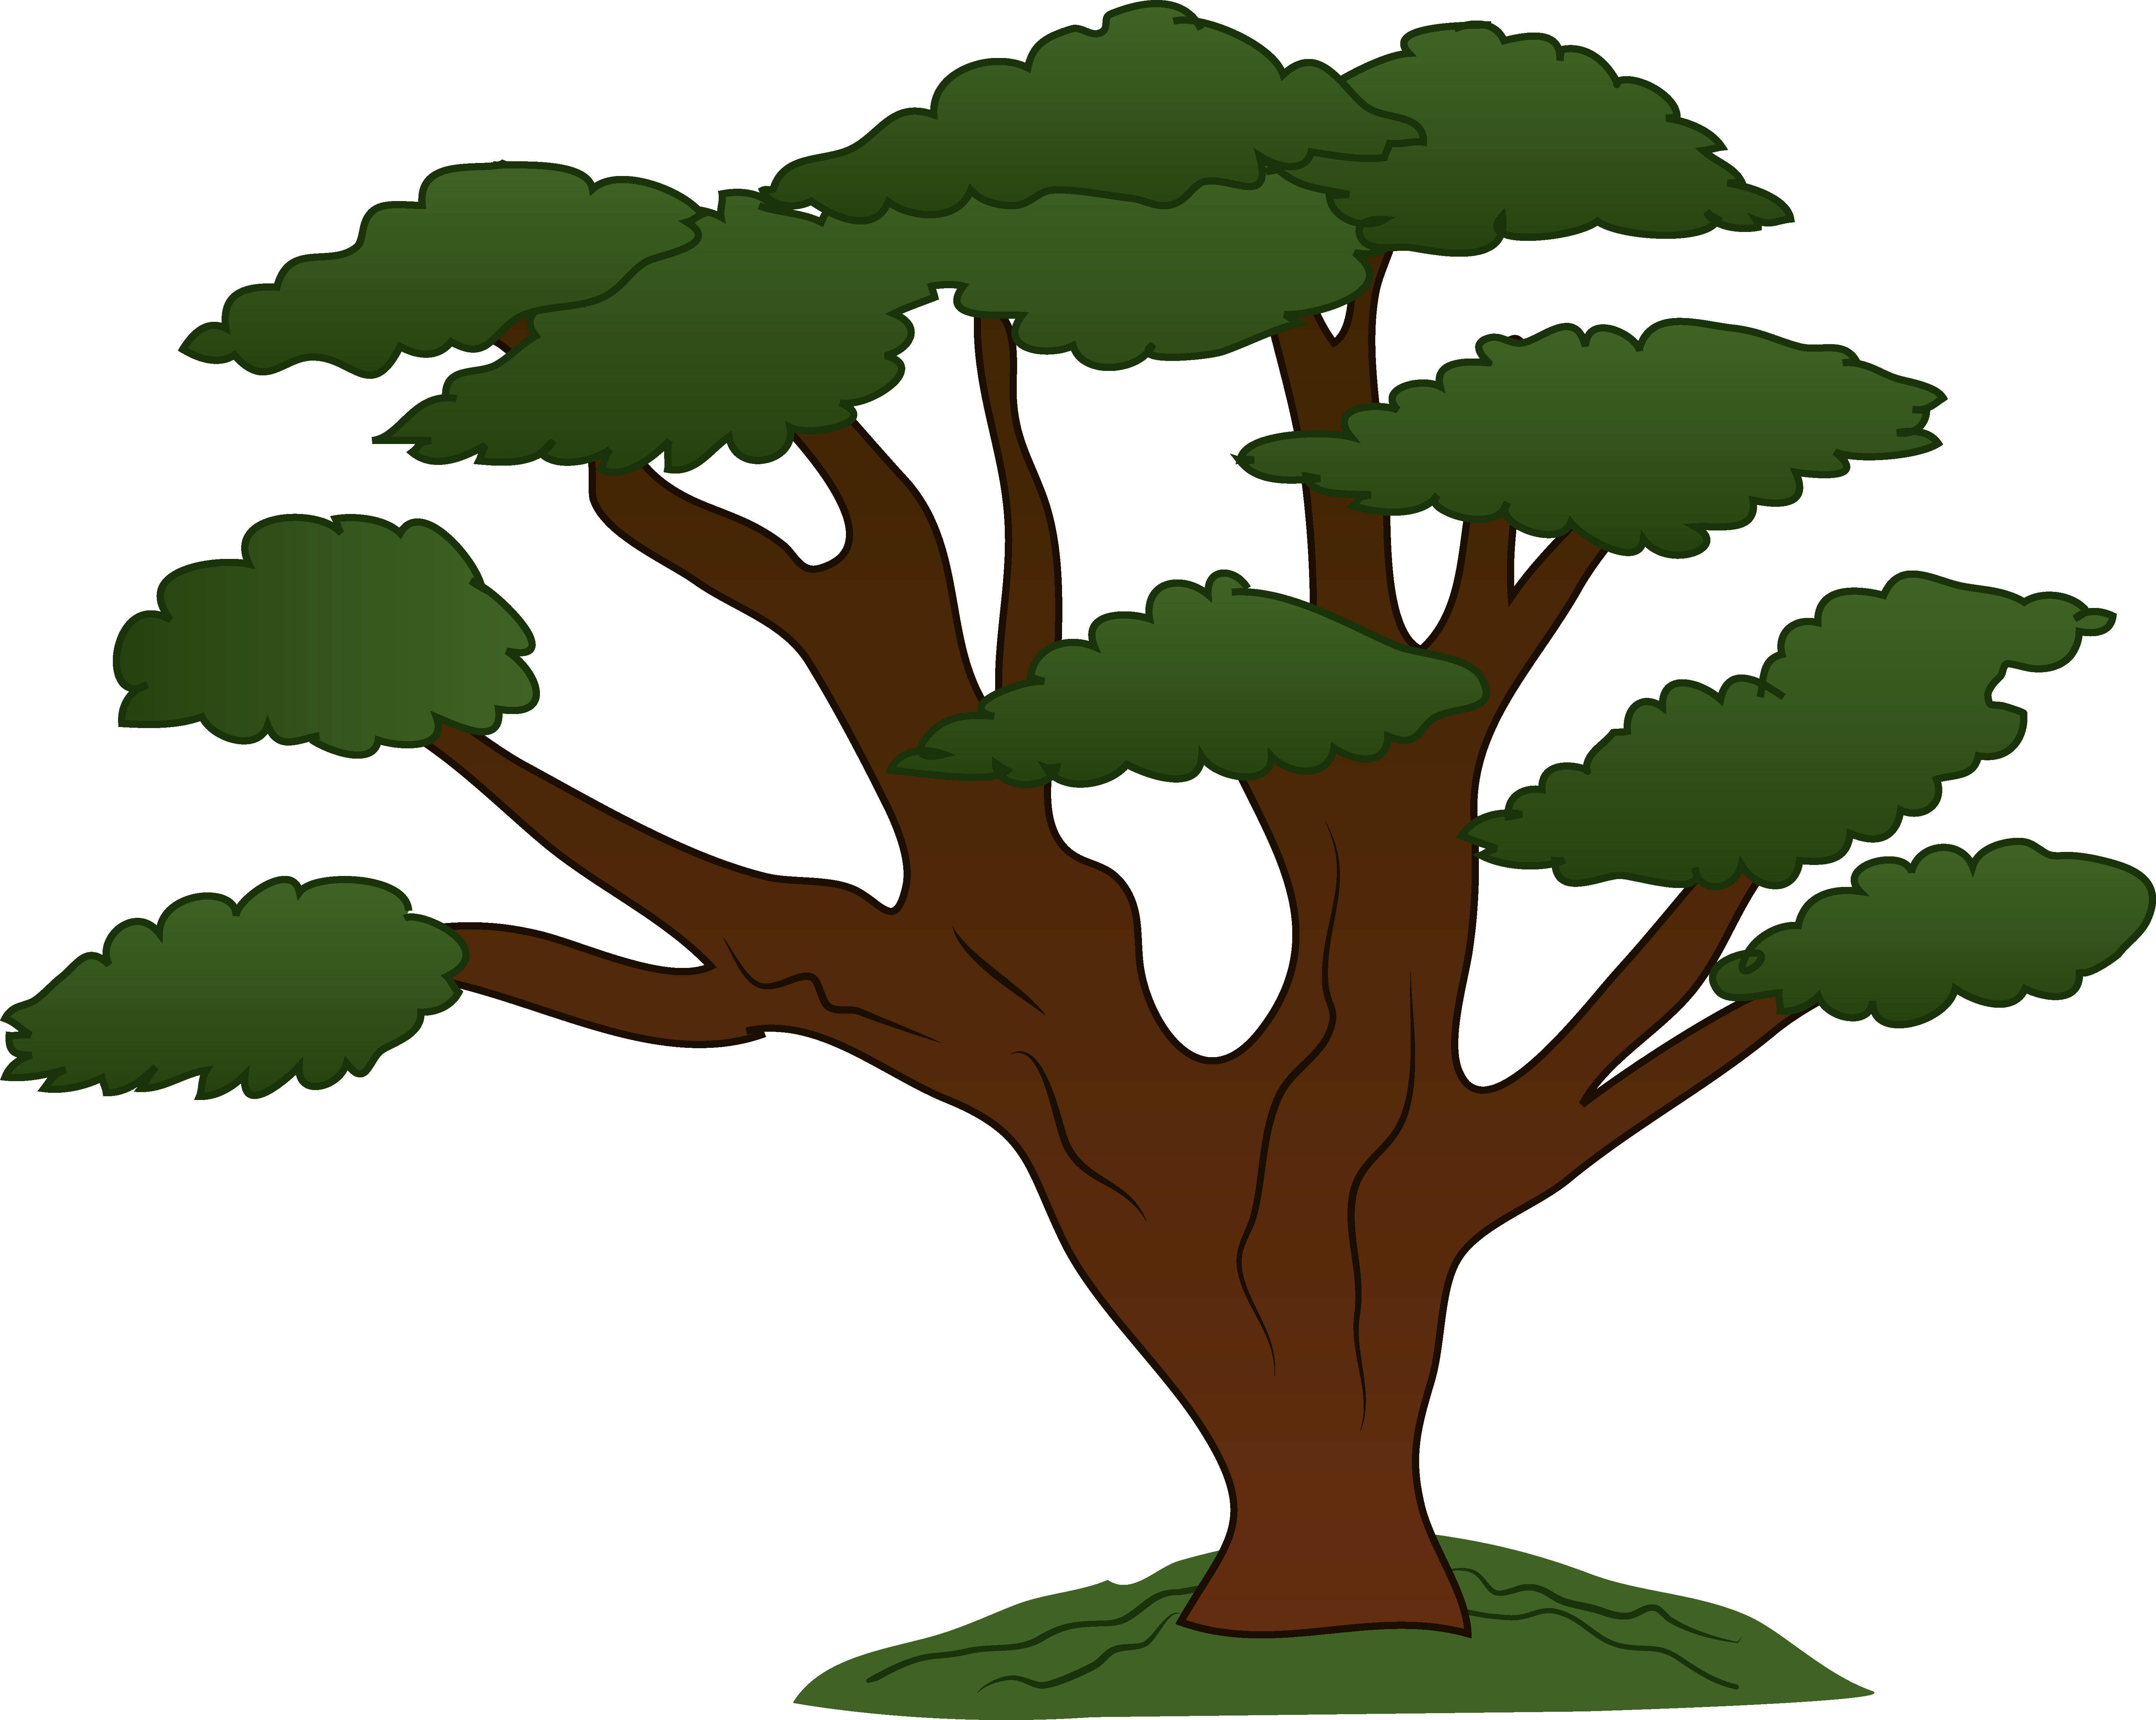 Tree clipart oak. Sweeping design free clip